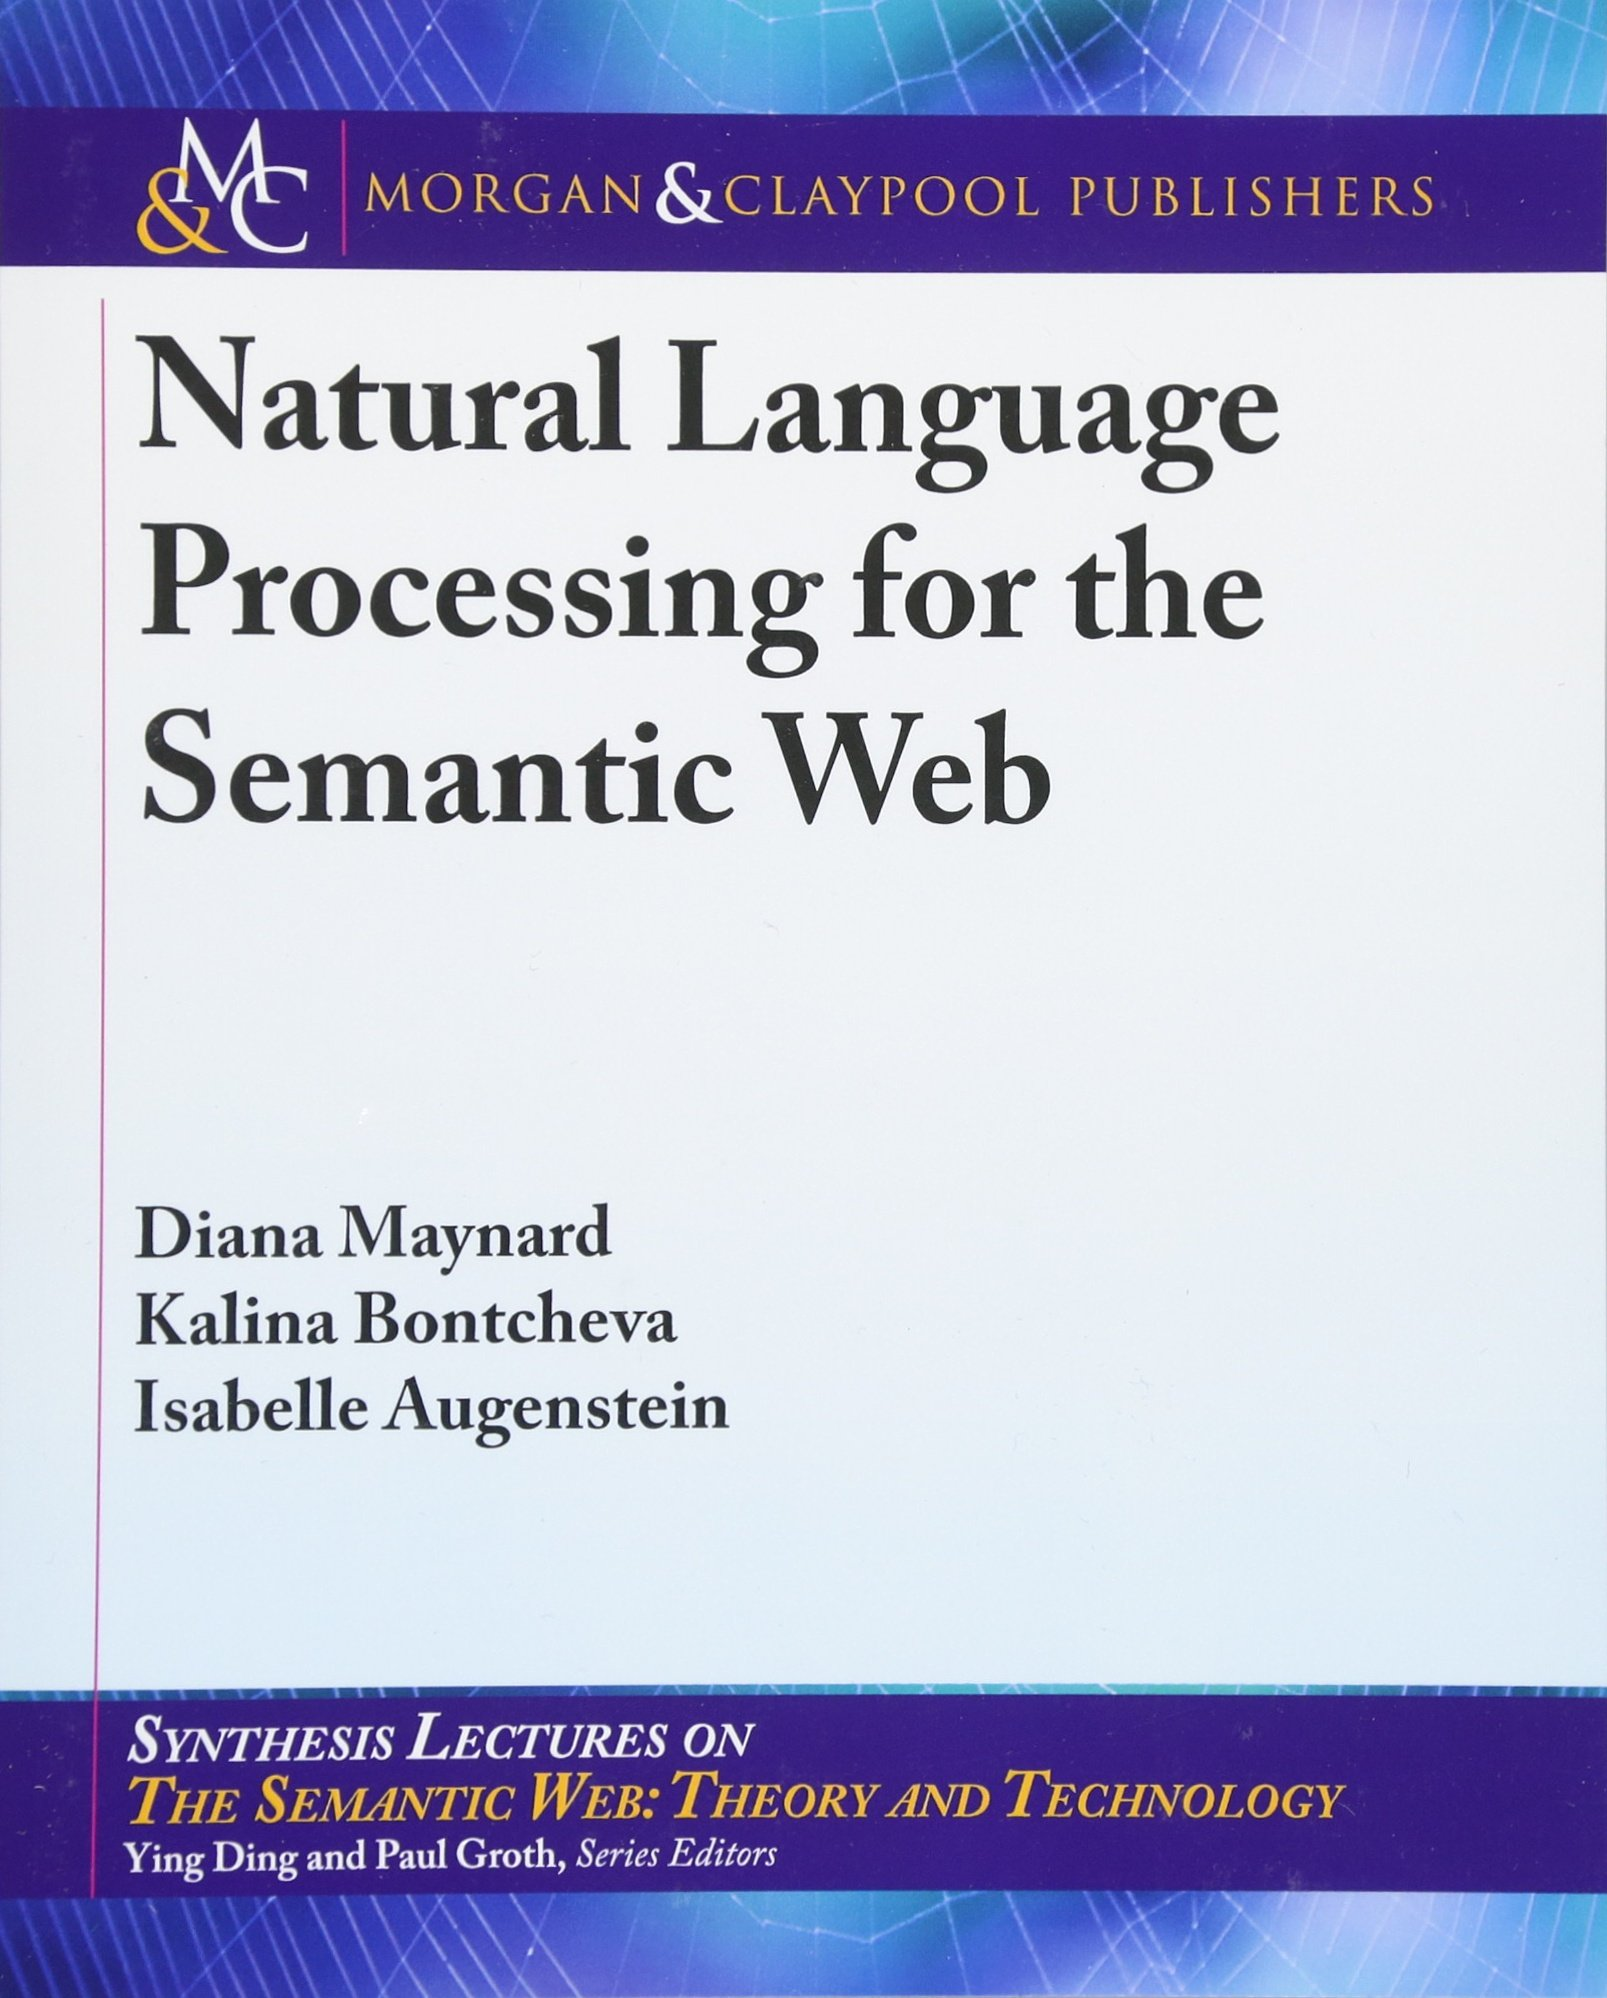 Natural Language Processing for the Semantic Web (Synthesis Lectures on the Semantic Web: Theory and Technolog) by Morgan & Claypool Publishers